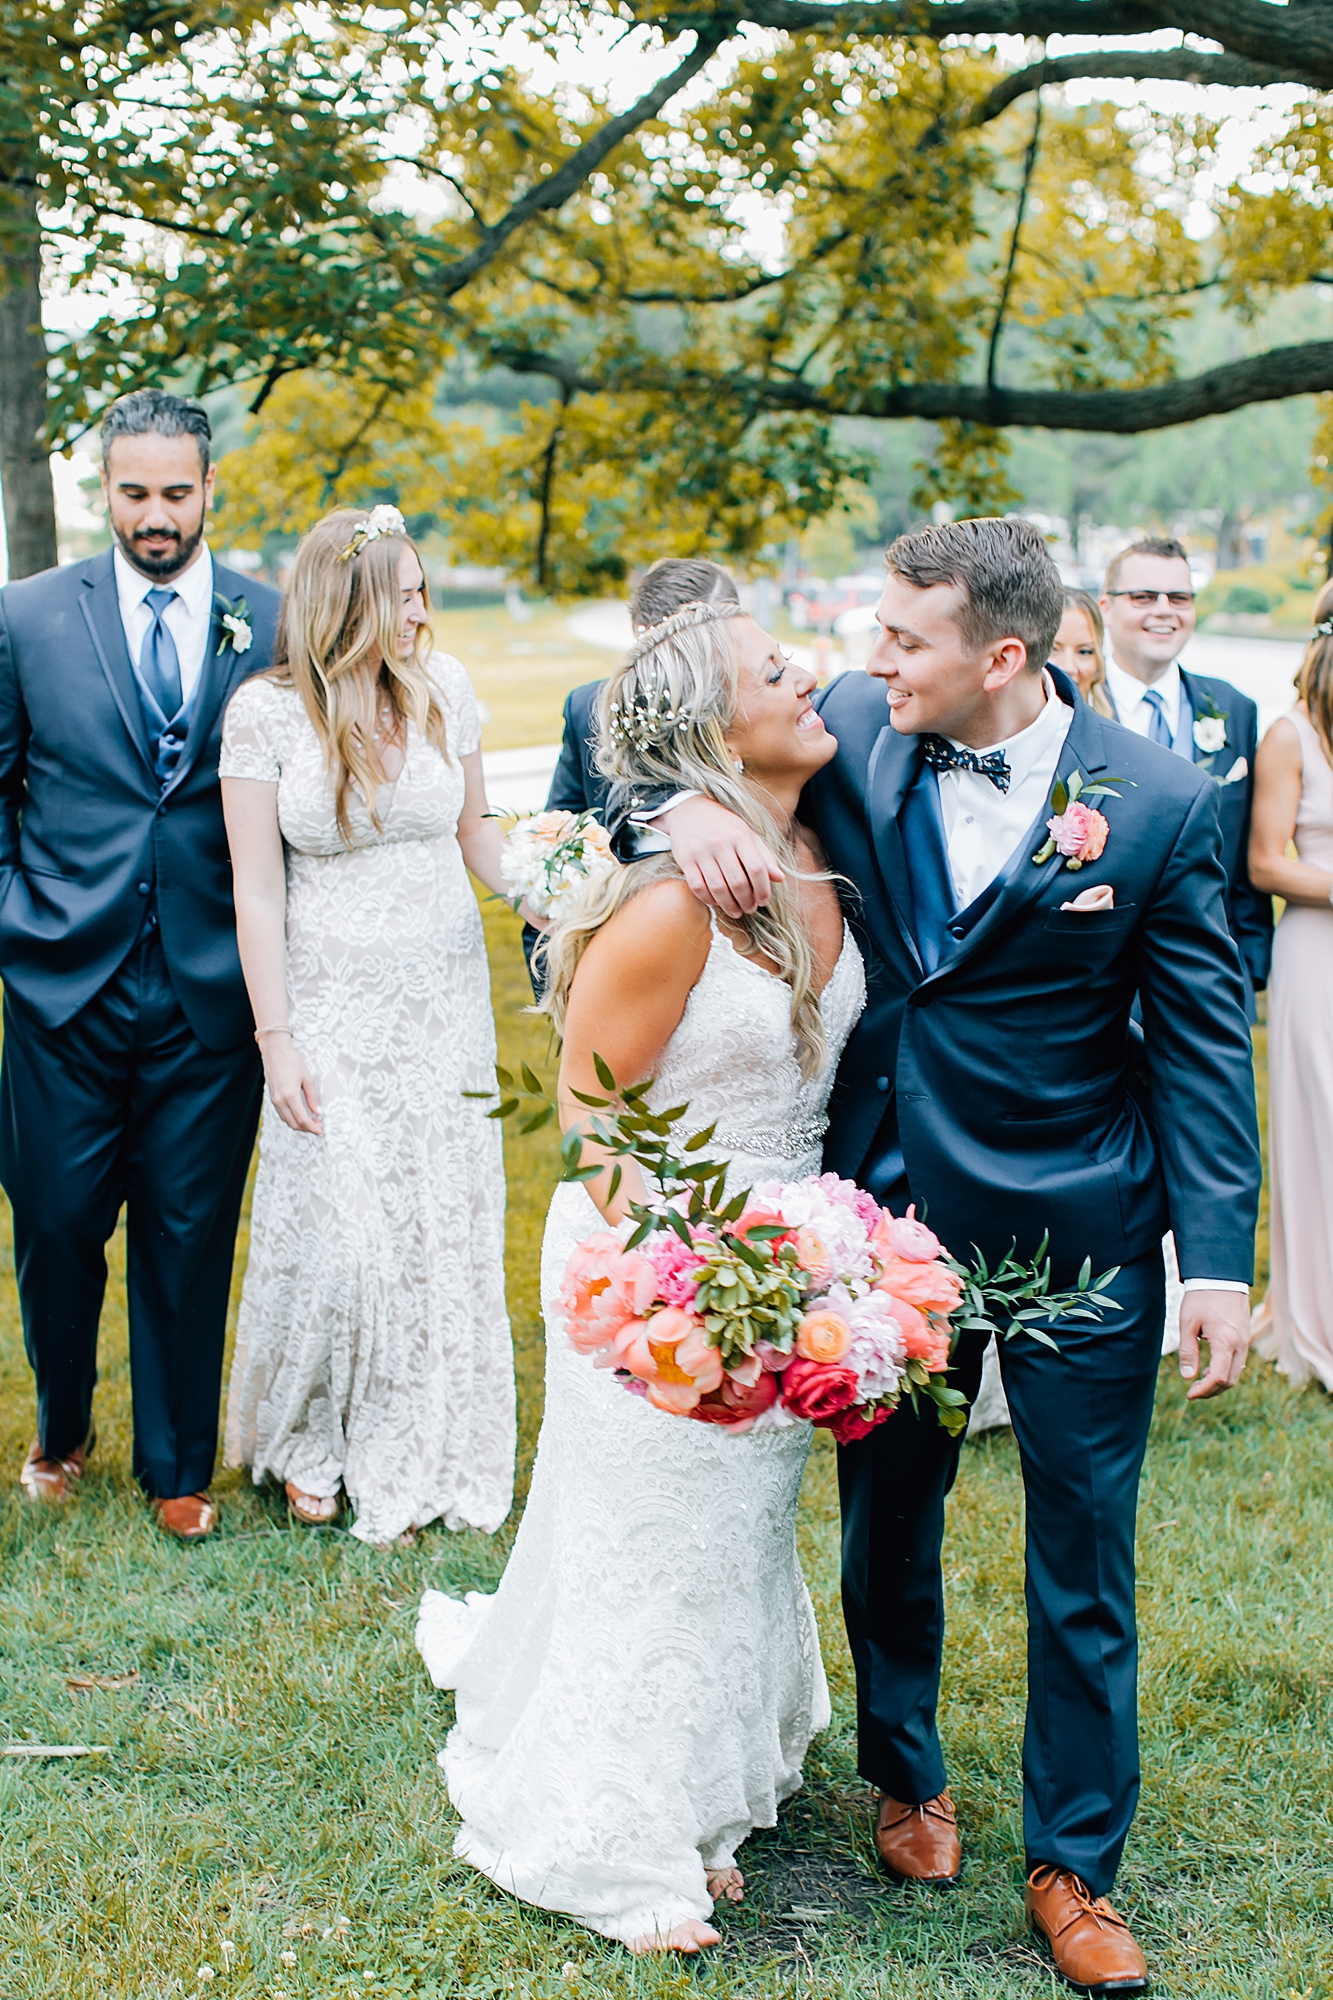 Candid and Genuine Fairmount Waterworks Philadelphia Wedding Photography by Magdalena Studios 0049 1